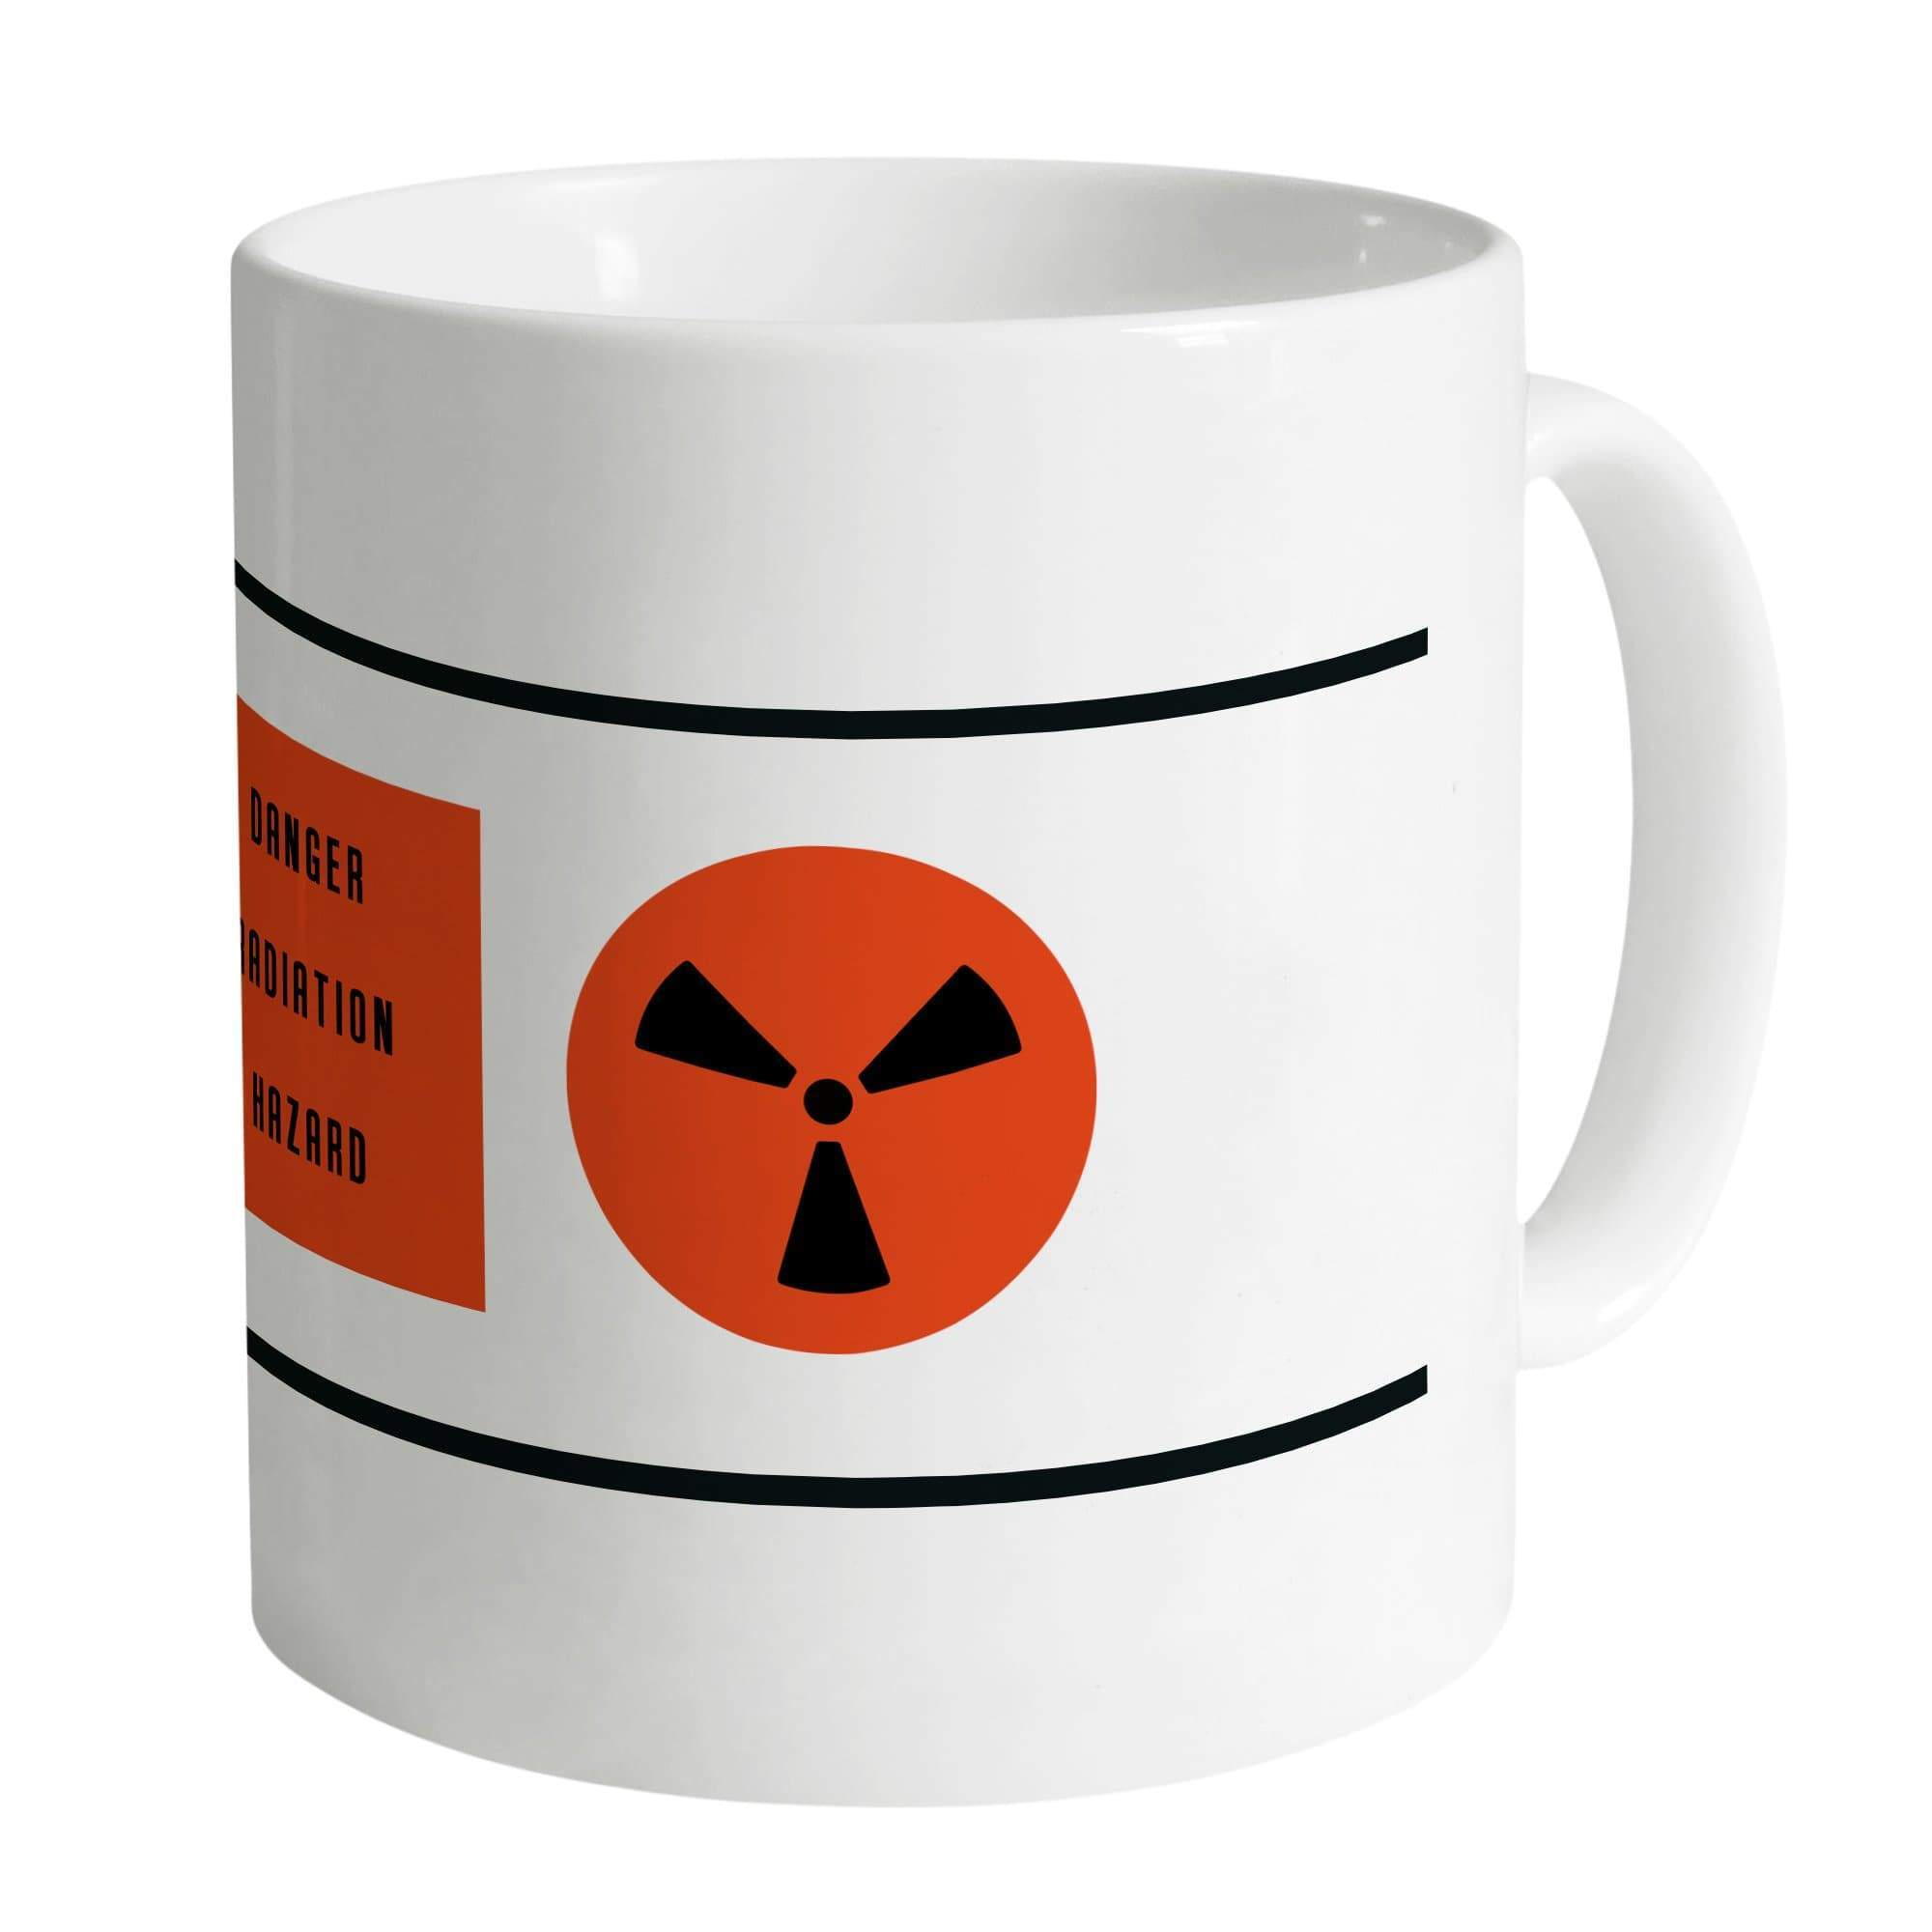 Nuclear Waste Canister White Mug - The Gerry Anderson Store